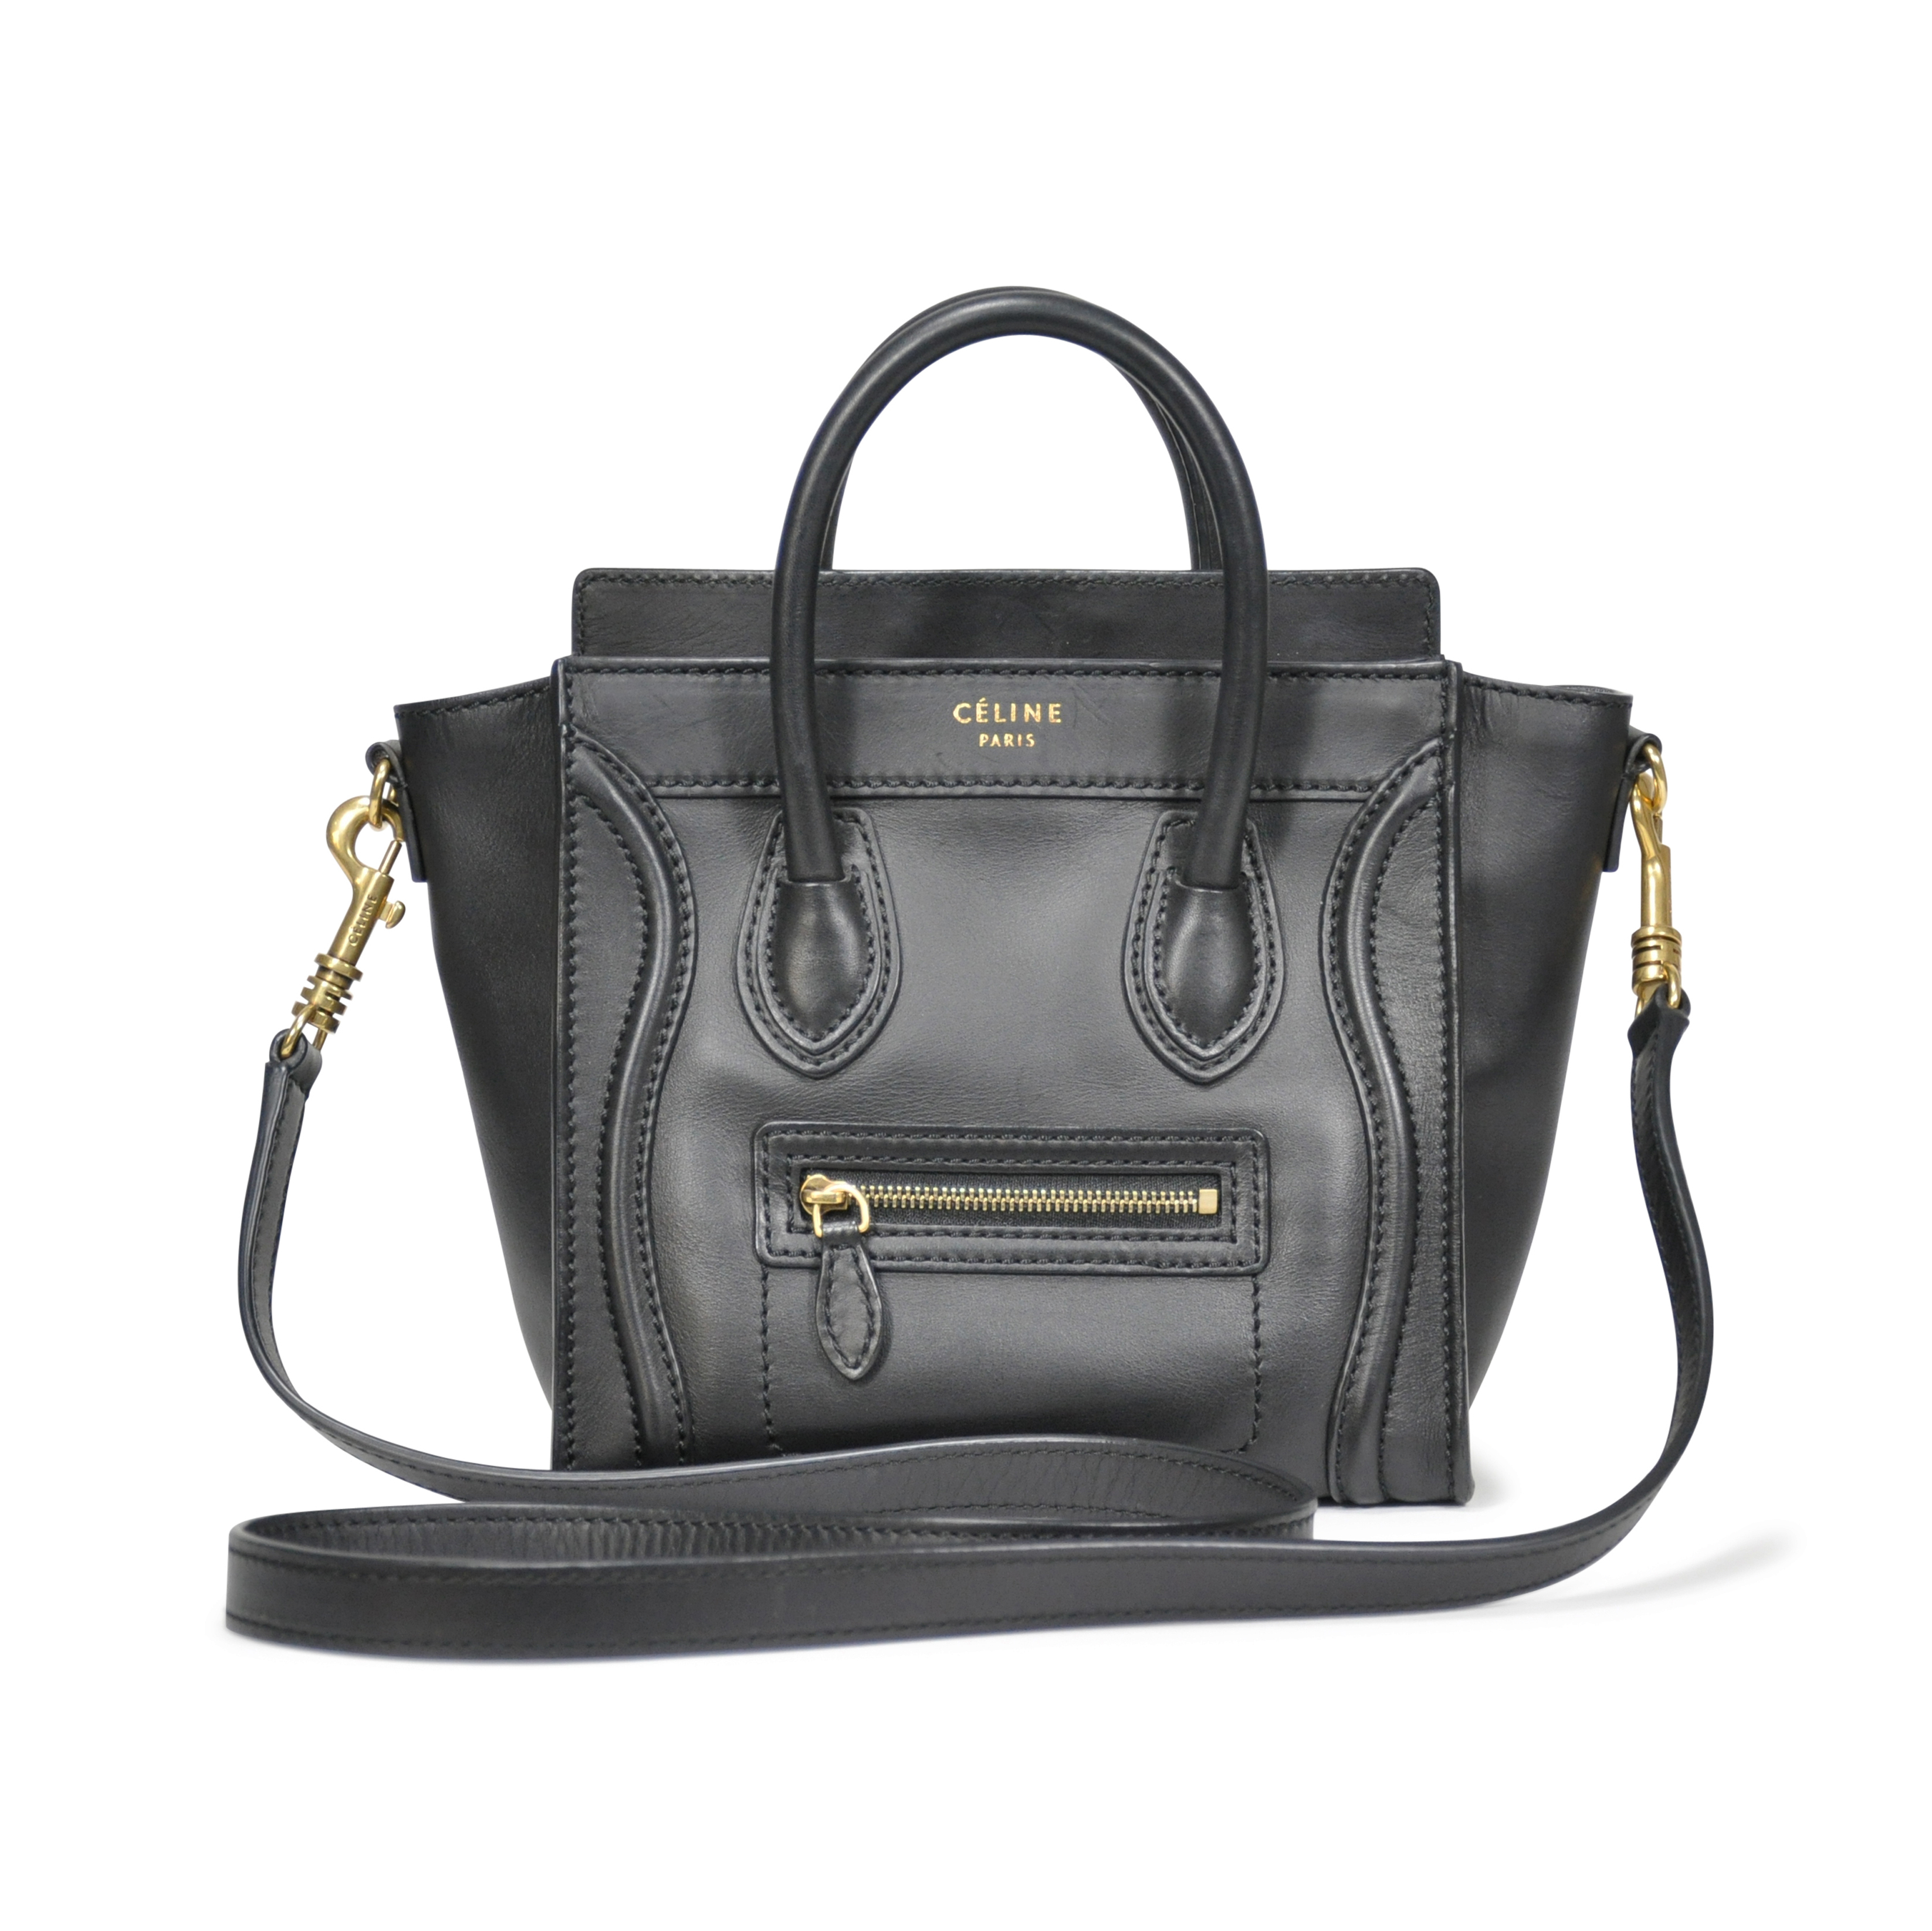 75b9af92c5d Authentic Pre Owned Céline Nano Luggage Bag (PSS-183-00038)   THE FIFTH  COLLECTION®